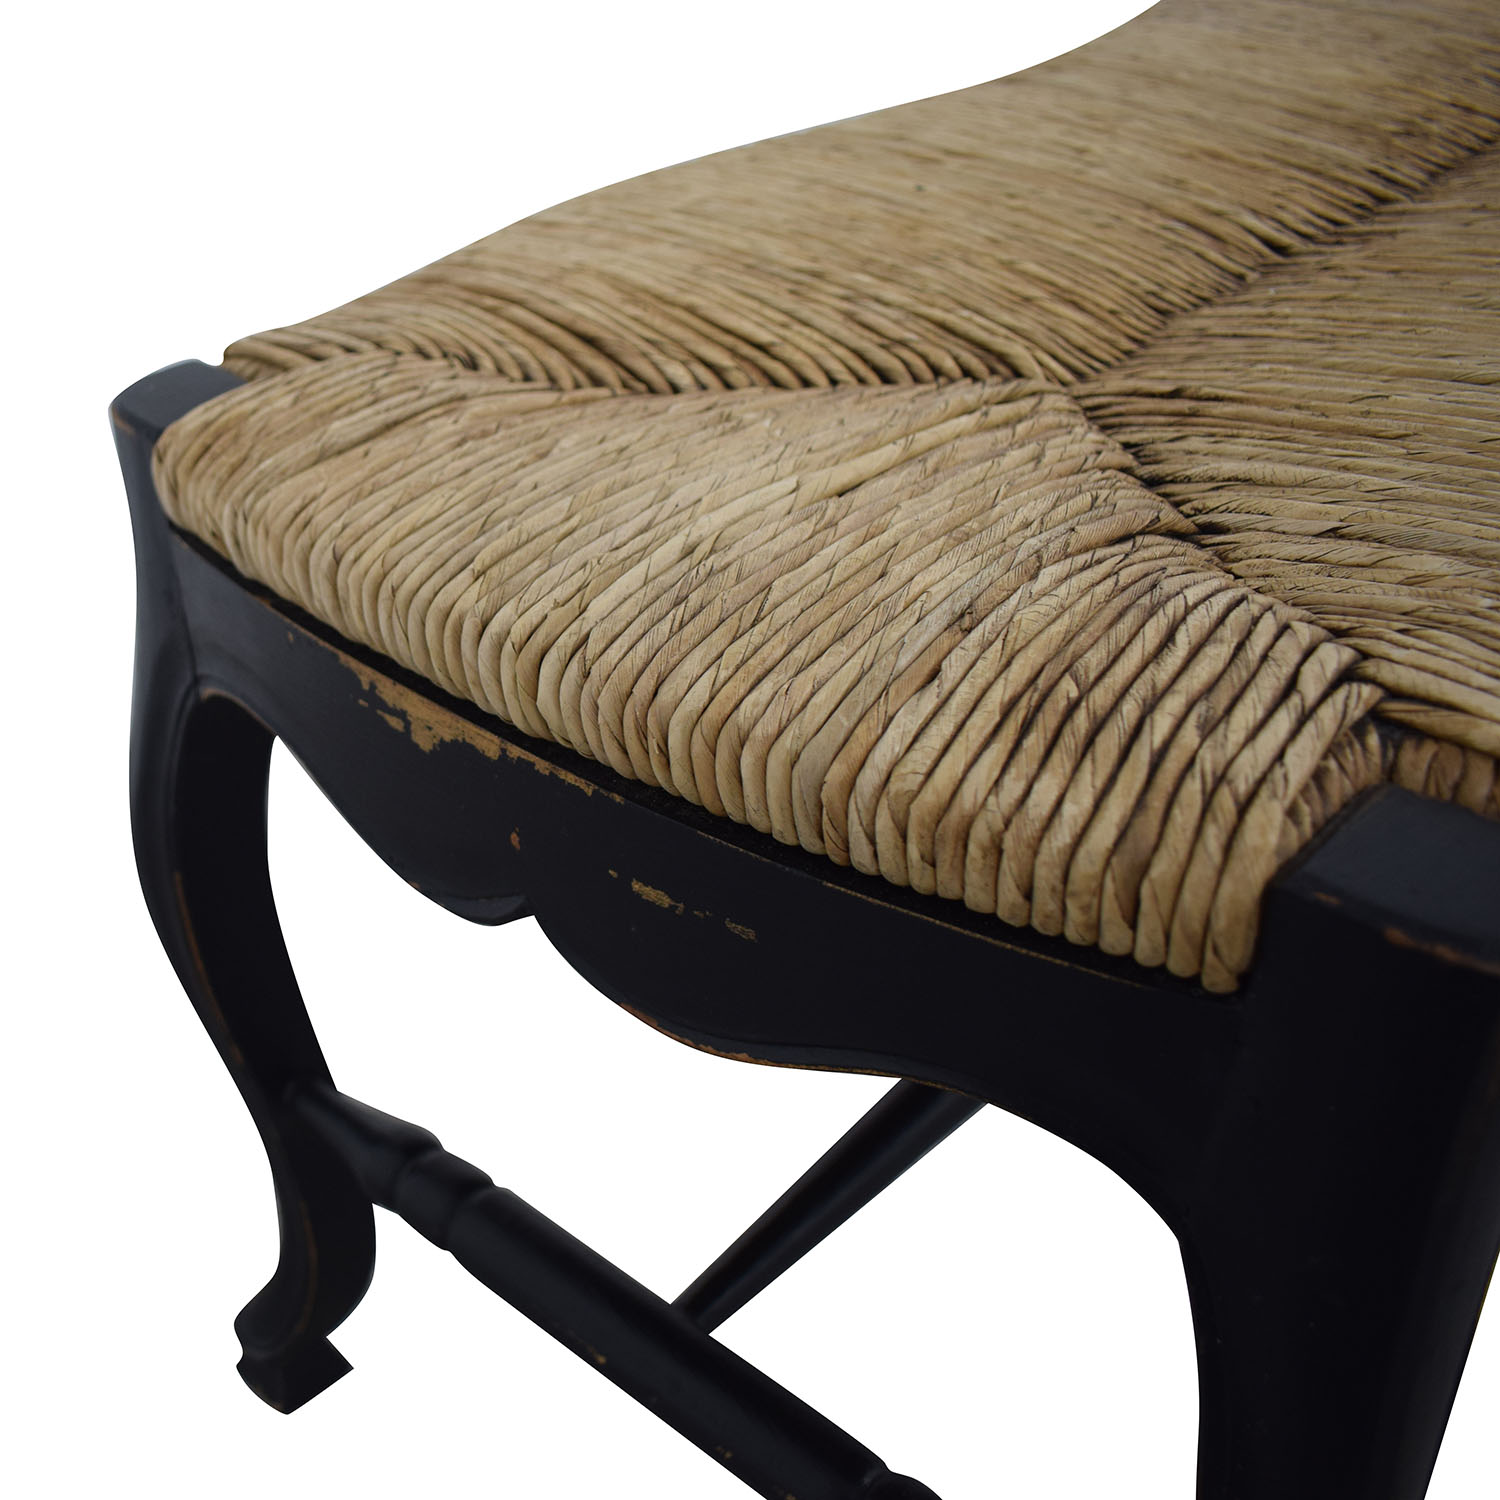 Pottery Barn Pottery Barn Wicker Top Bench Chairs